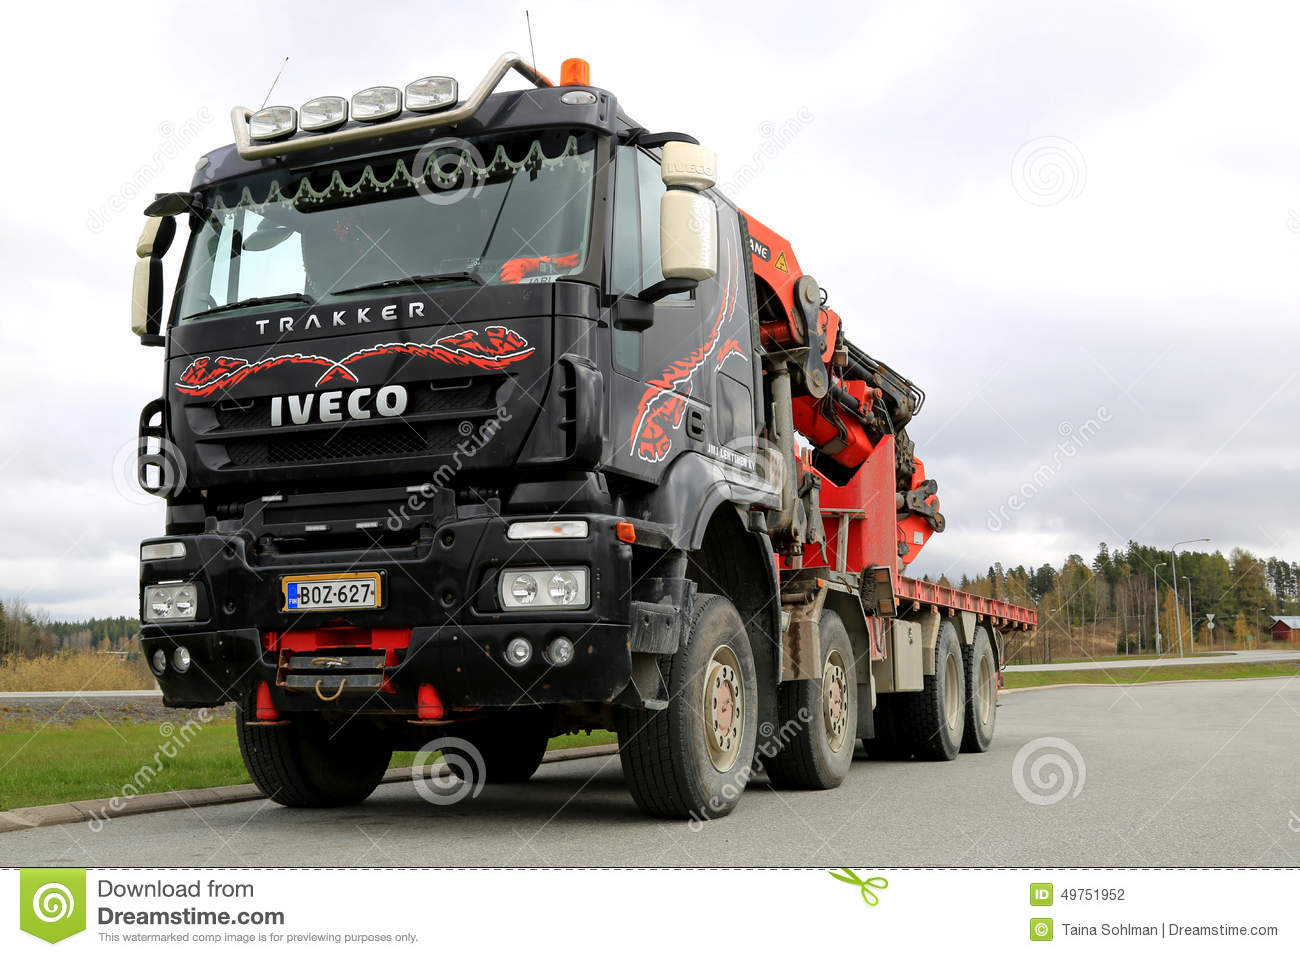 iveco trakker mit lkw angebrachtem palfinger kran redaktionelles stockfotografie bild 49751952. Black Bedroom Furniture Sets. Home Design Ideas